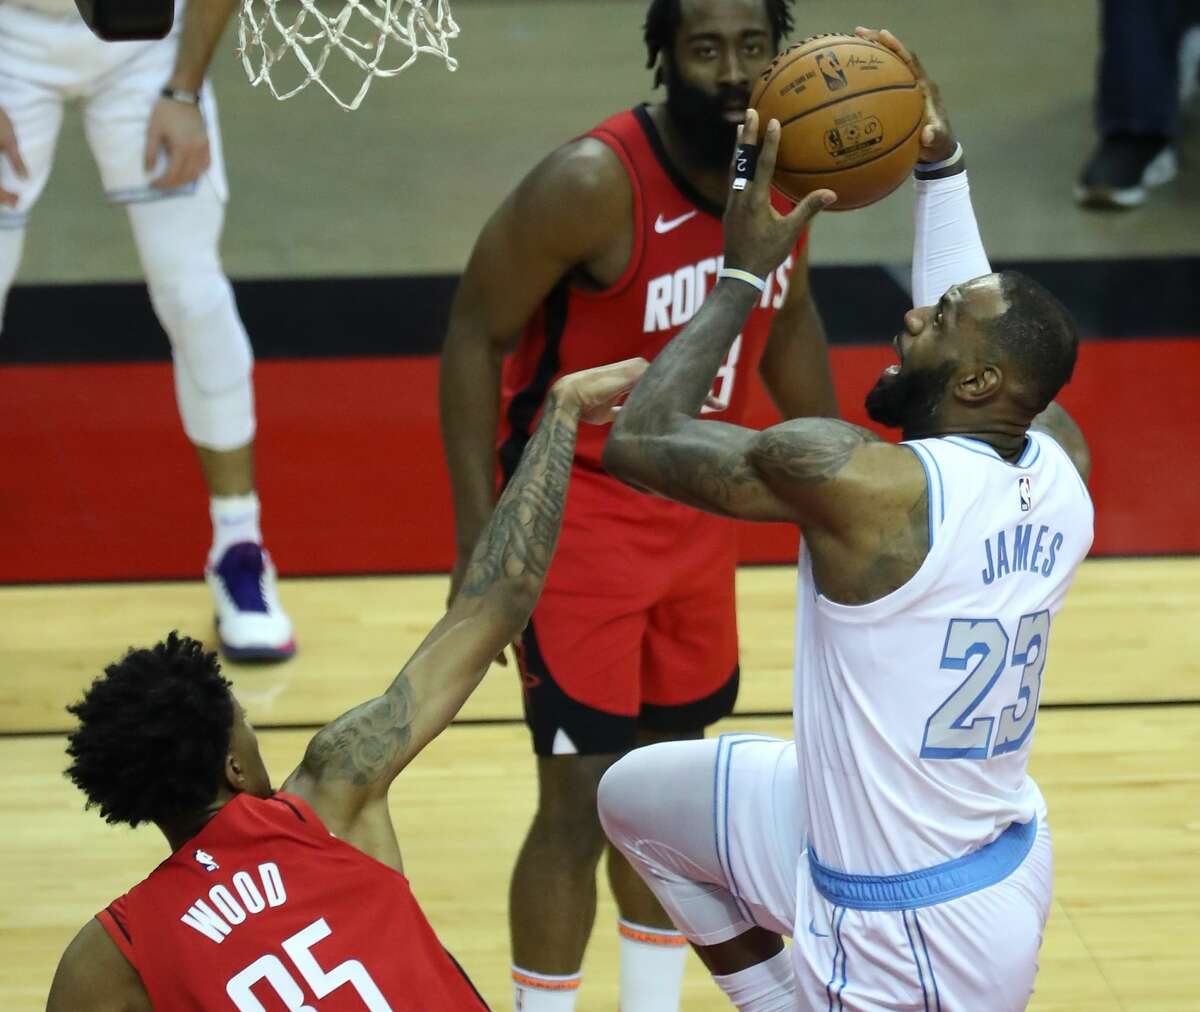 Los Angeles Lakers forward LeBron James (23) goes up for a shot against Houston Rockets center Christian Wood (35) during the second quarter of an NBA basketball game on Sunday, Jan. 10, 2021, at Toyota Center in Houston.